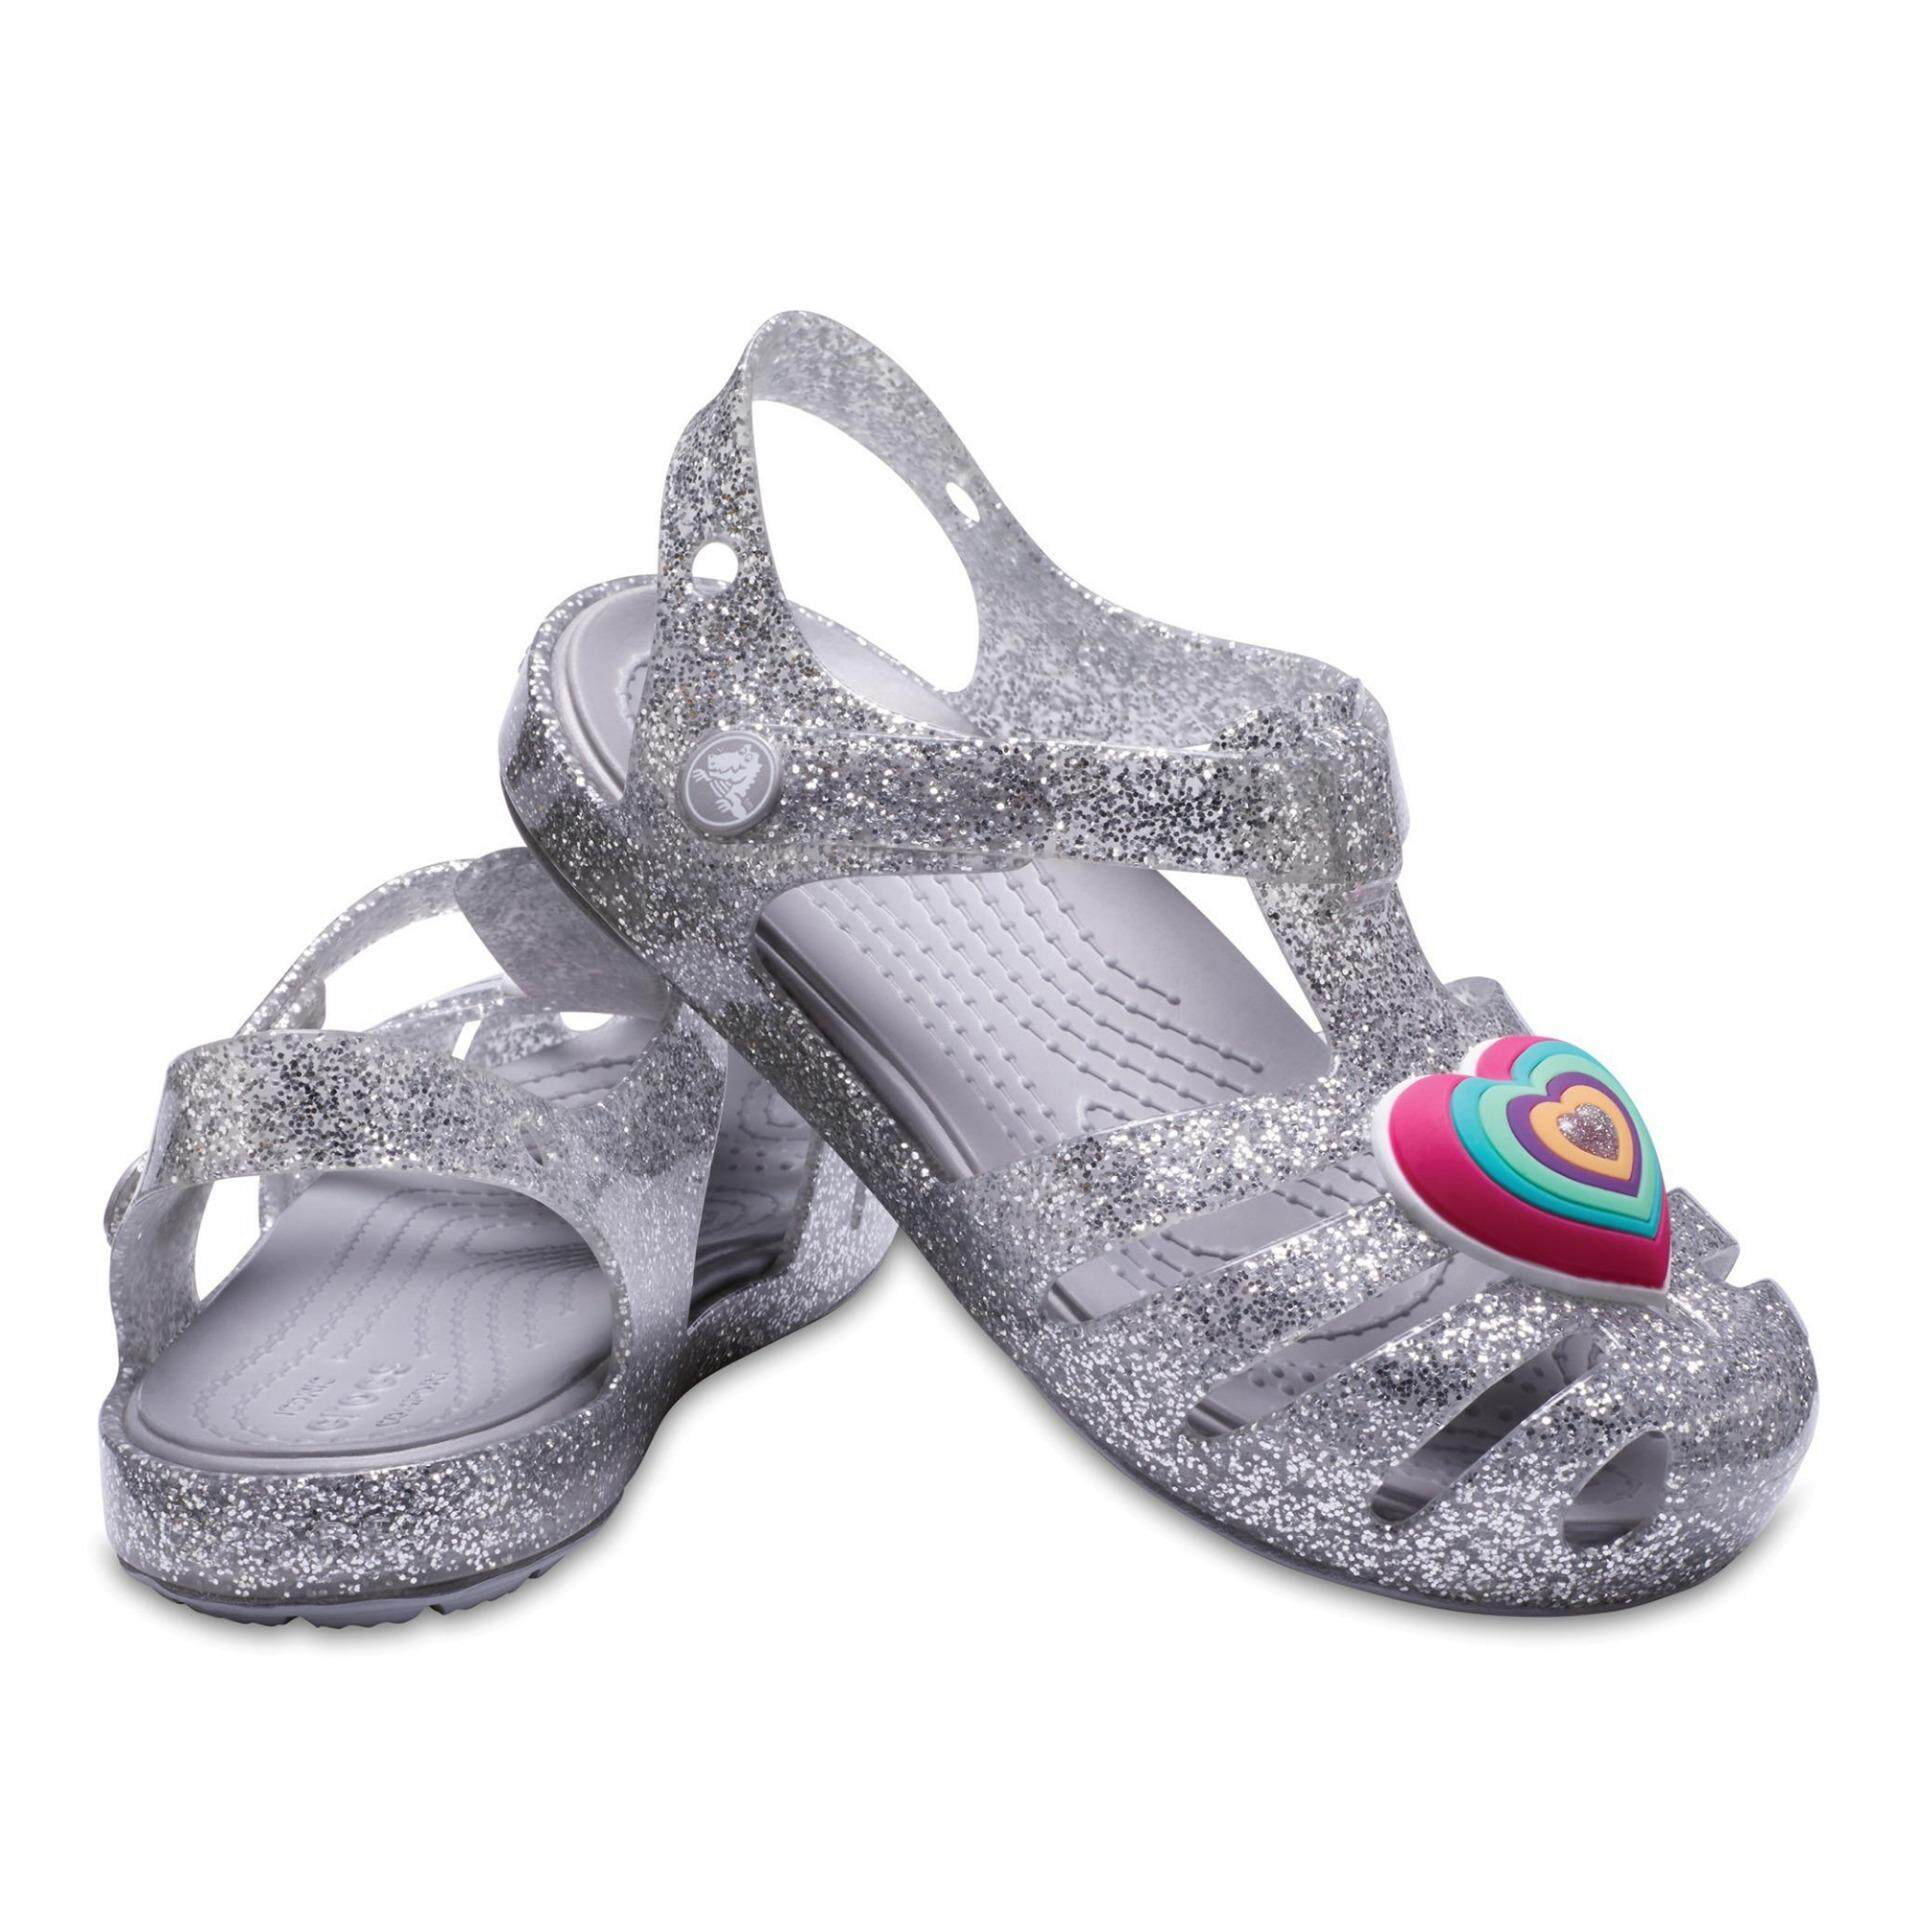 e63febd946a CROCS Products for the Best Prices in Malaysia